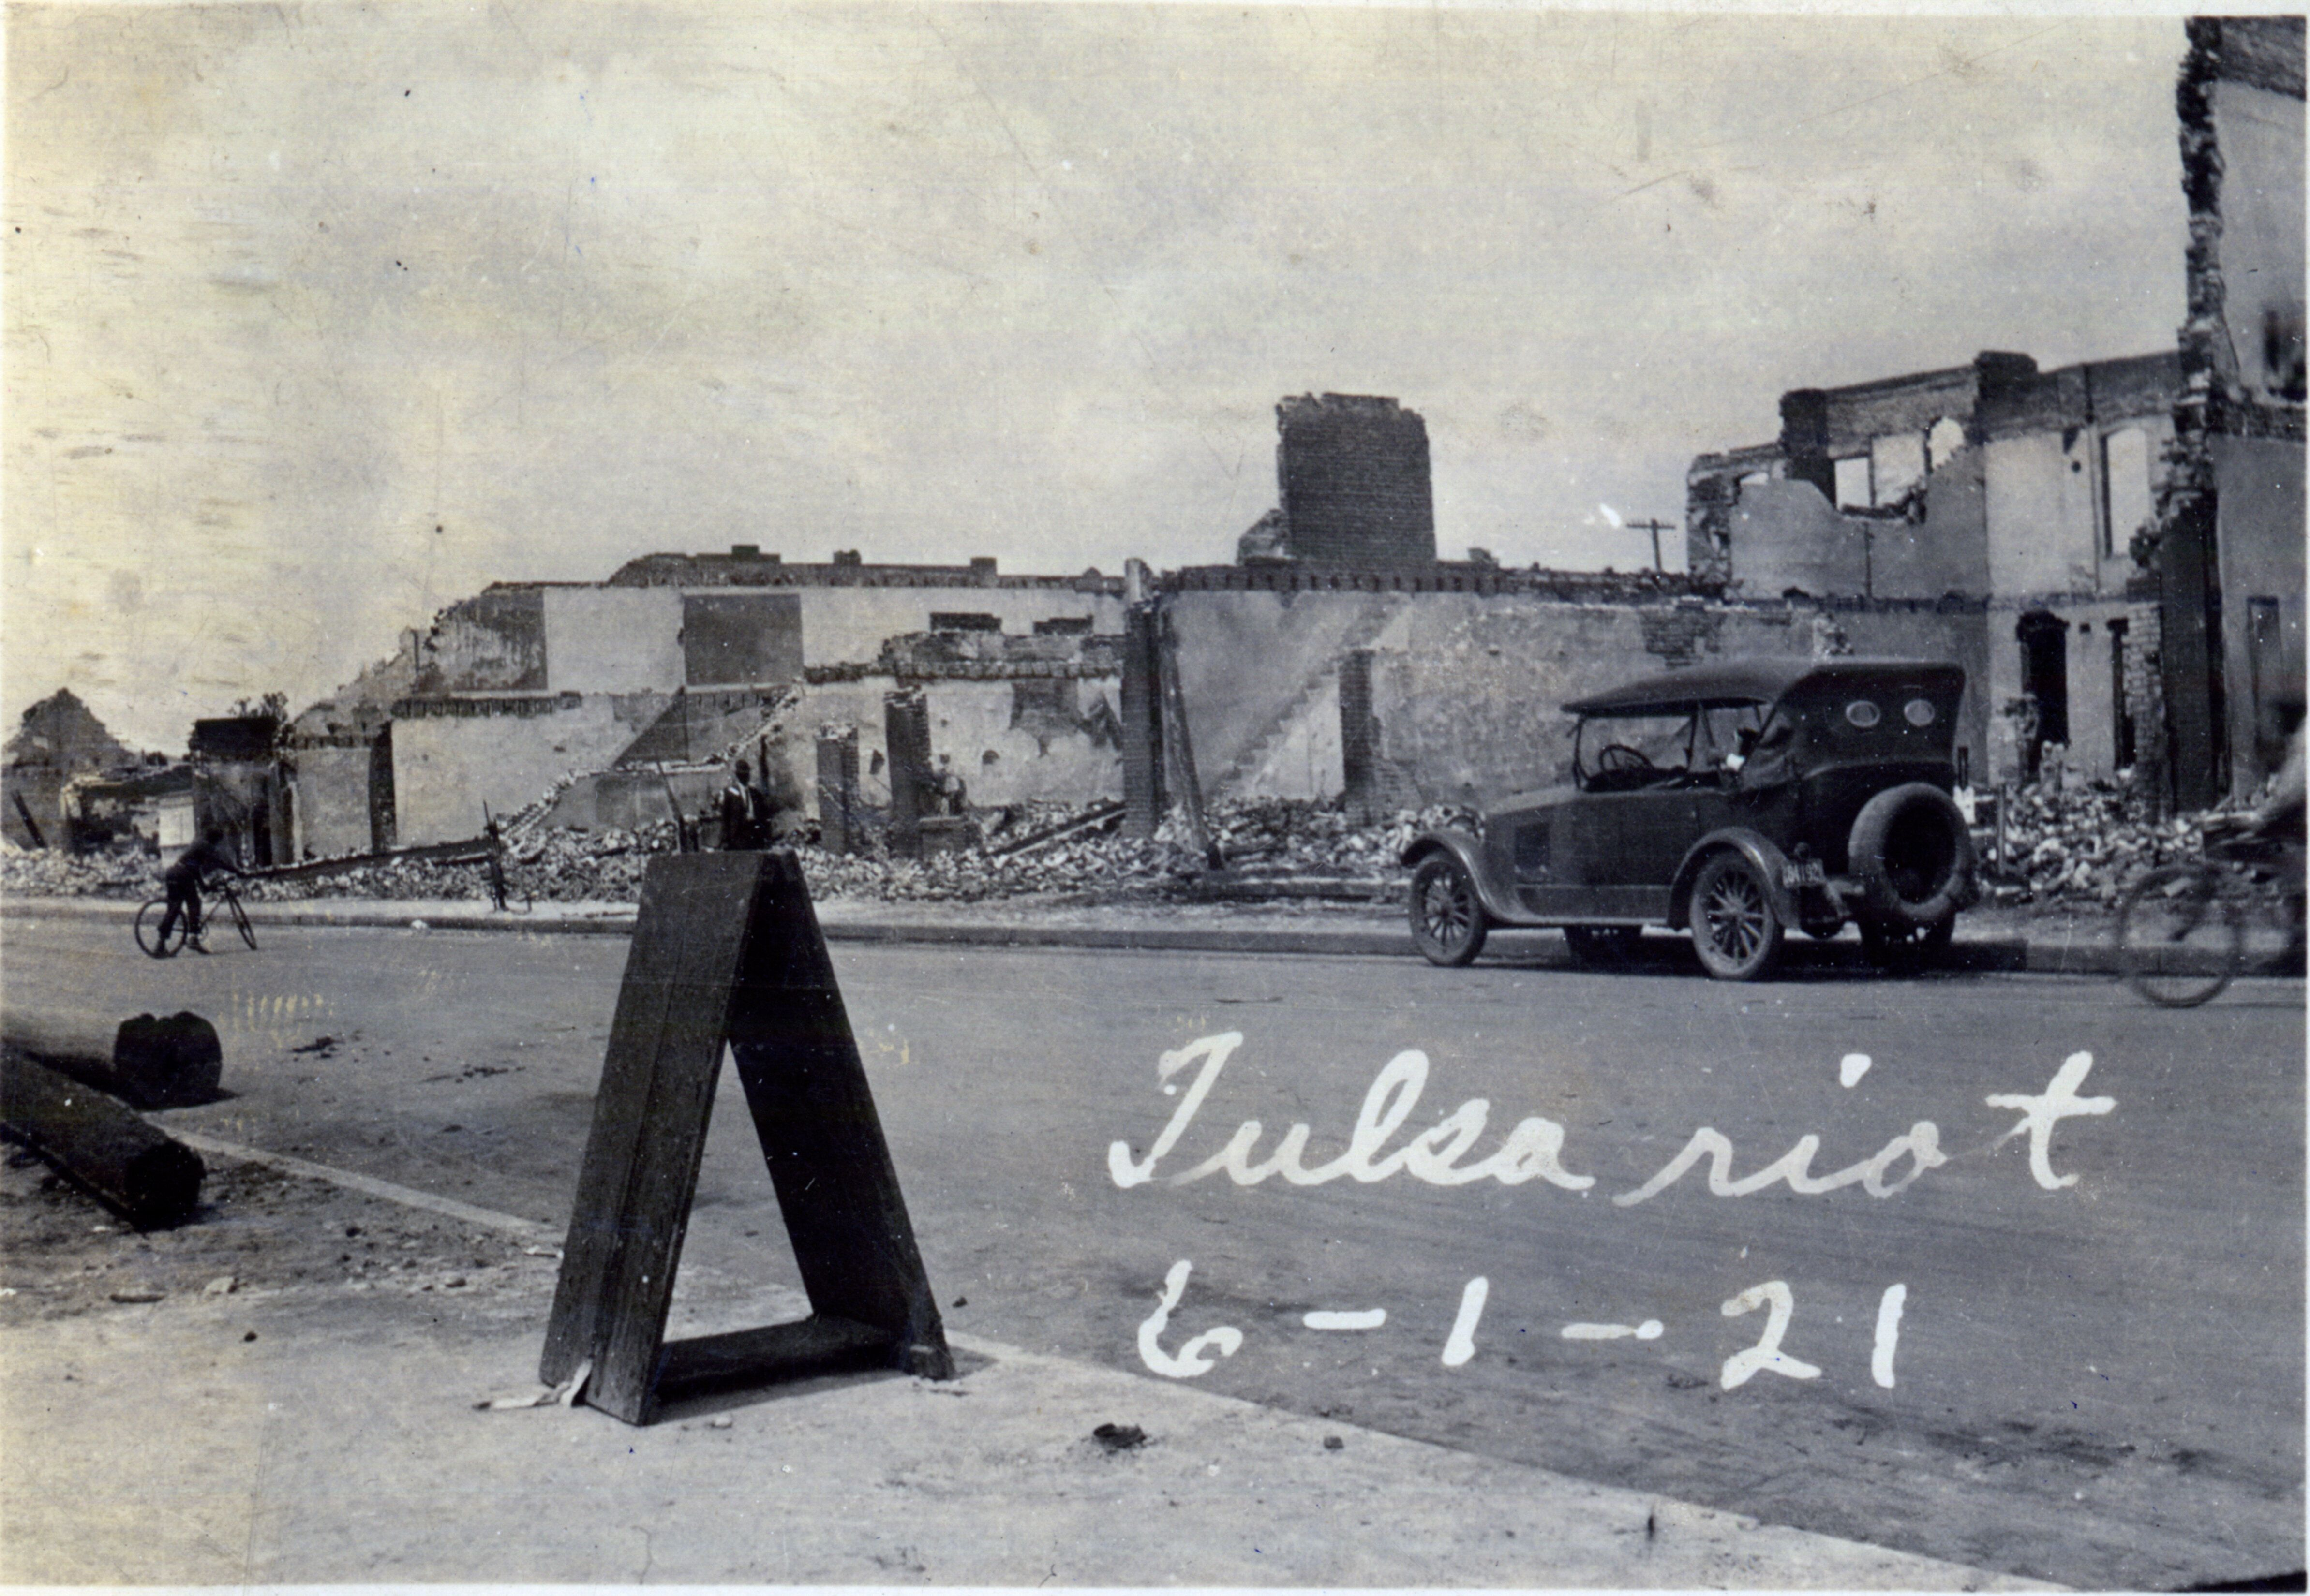 Burned buildings after the Tulsa Race Massacre in Oklahoma in June 1921.